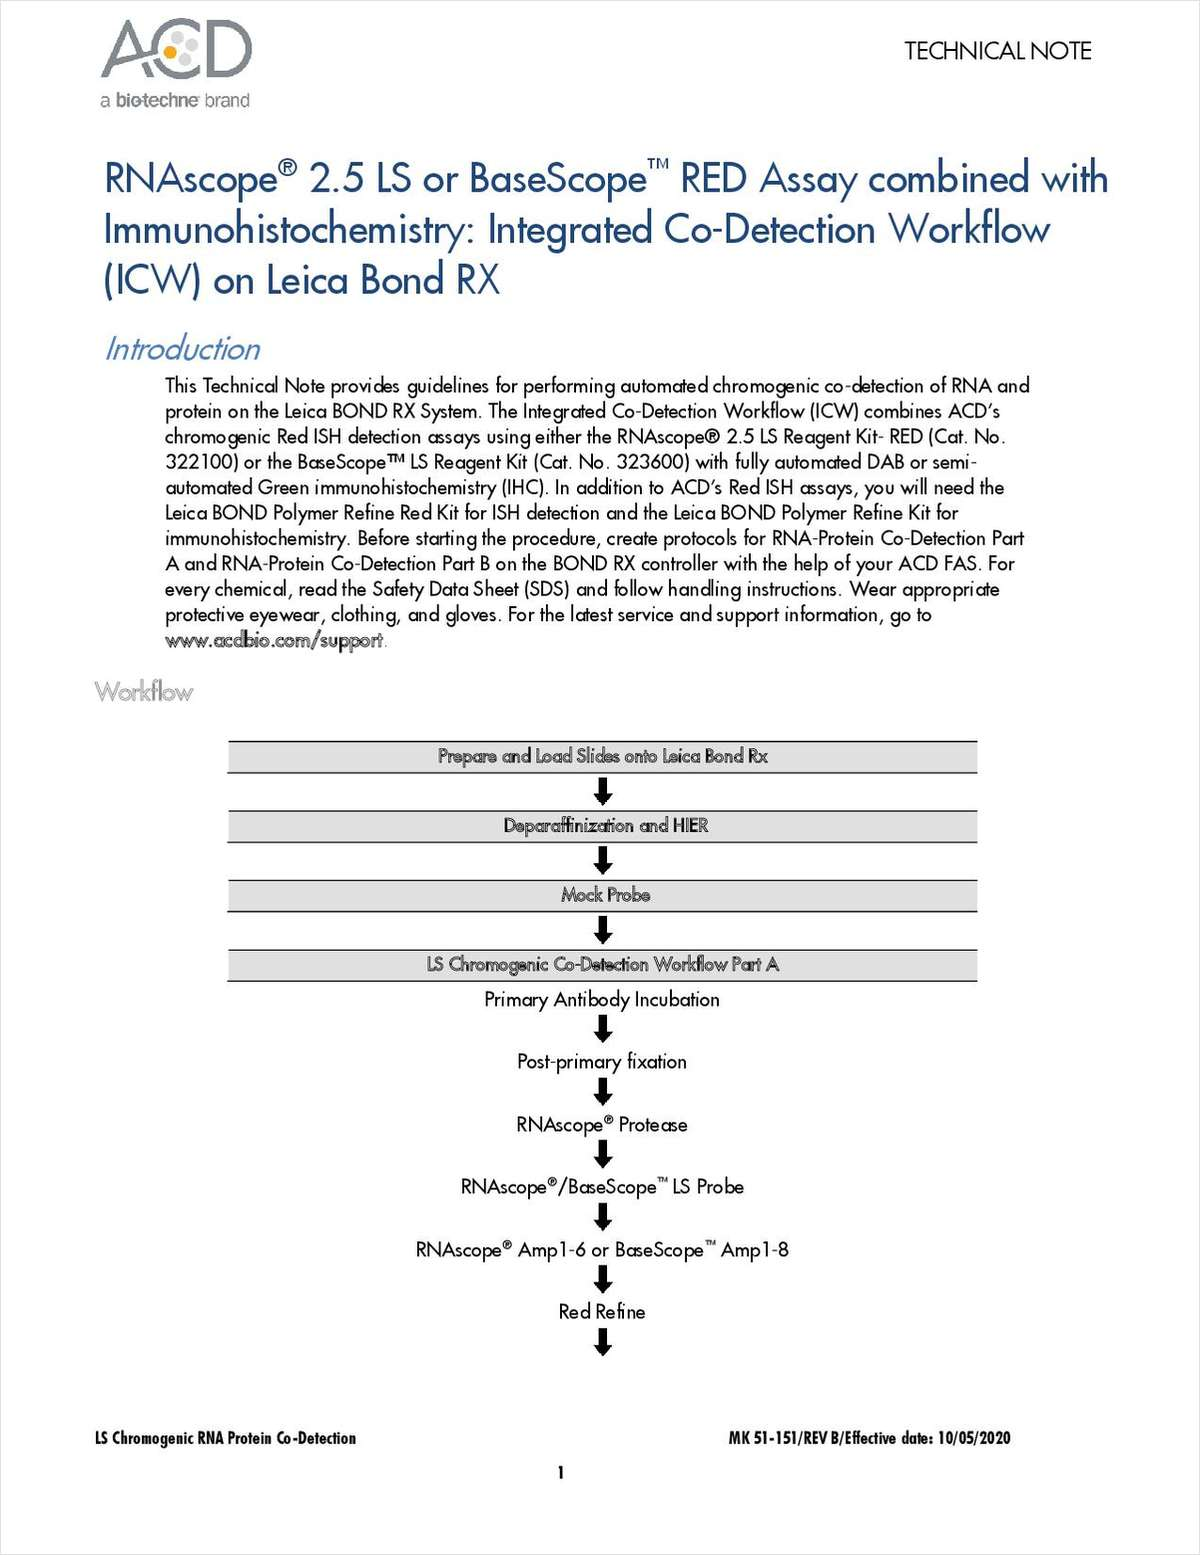 RNAscope 2.5 LS or BaseScope RED Assay Combined with Immunohistochemistry: Integrated Co-Detection Workflow (ICW) on Leica Bond RX